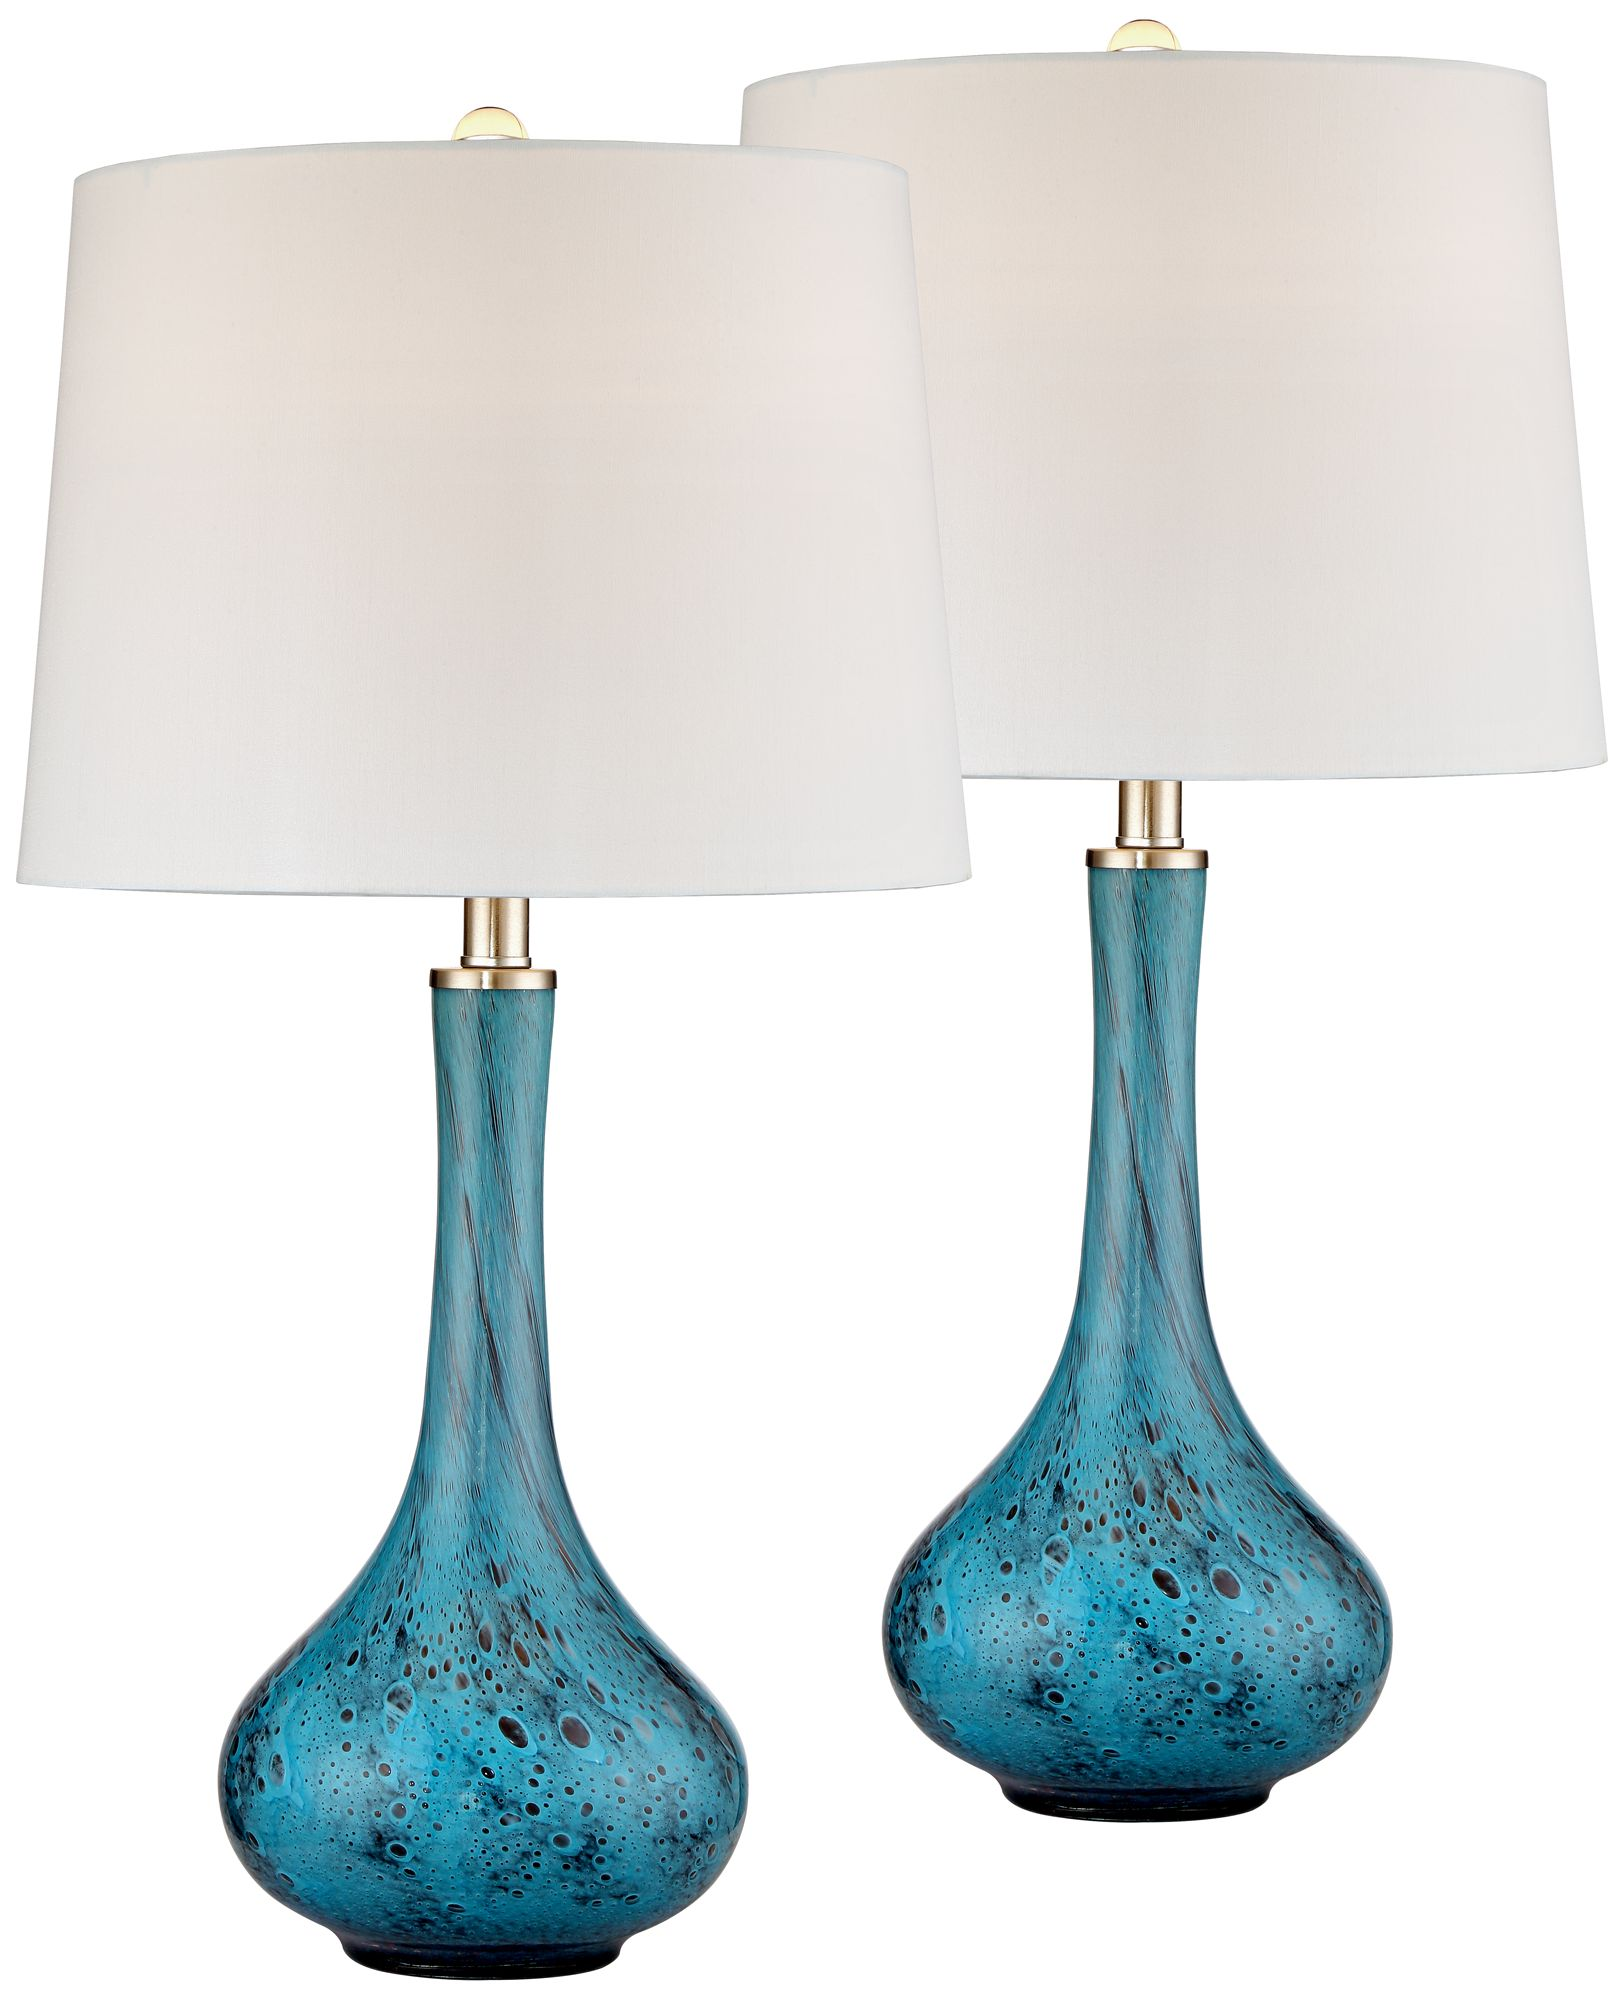 Exceptional Morgan Blue Art Glass Table Lamp Set Of 2